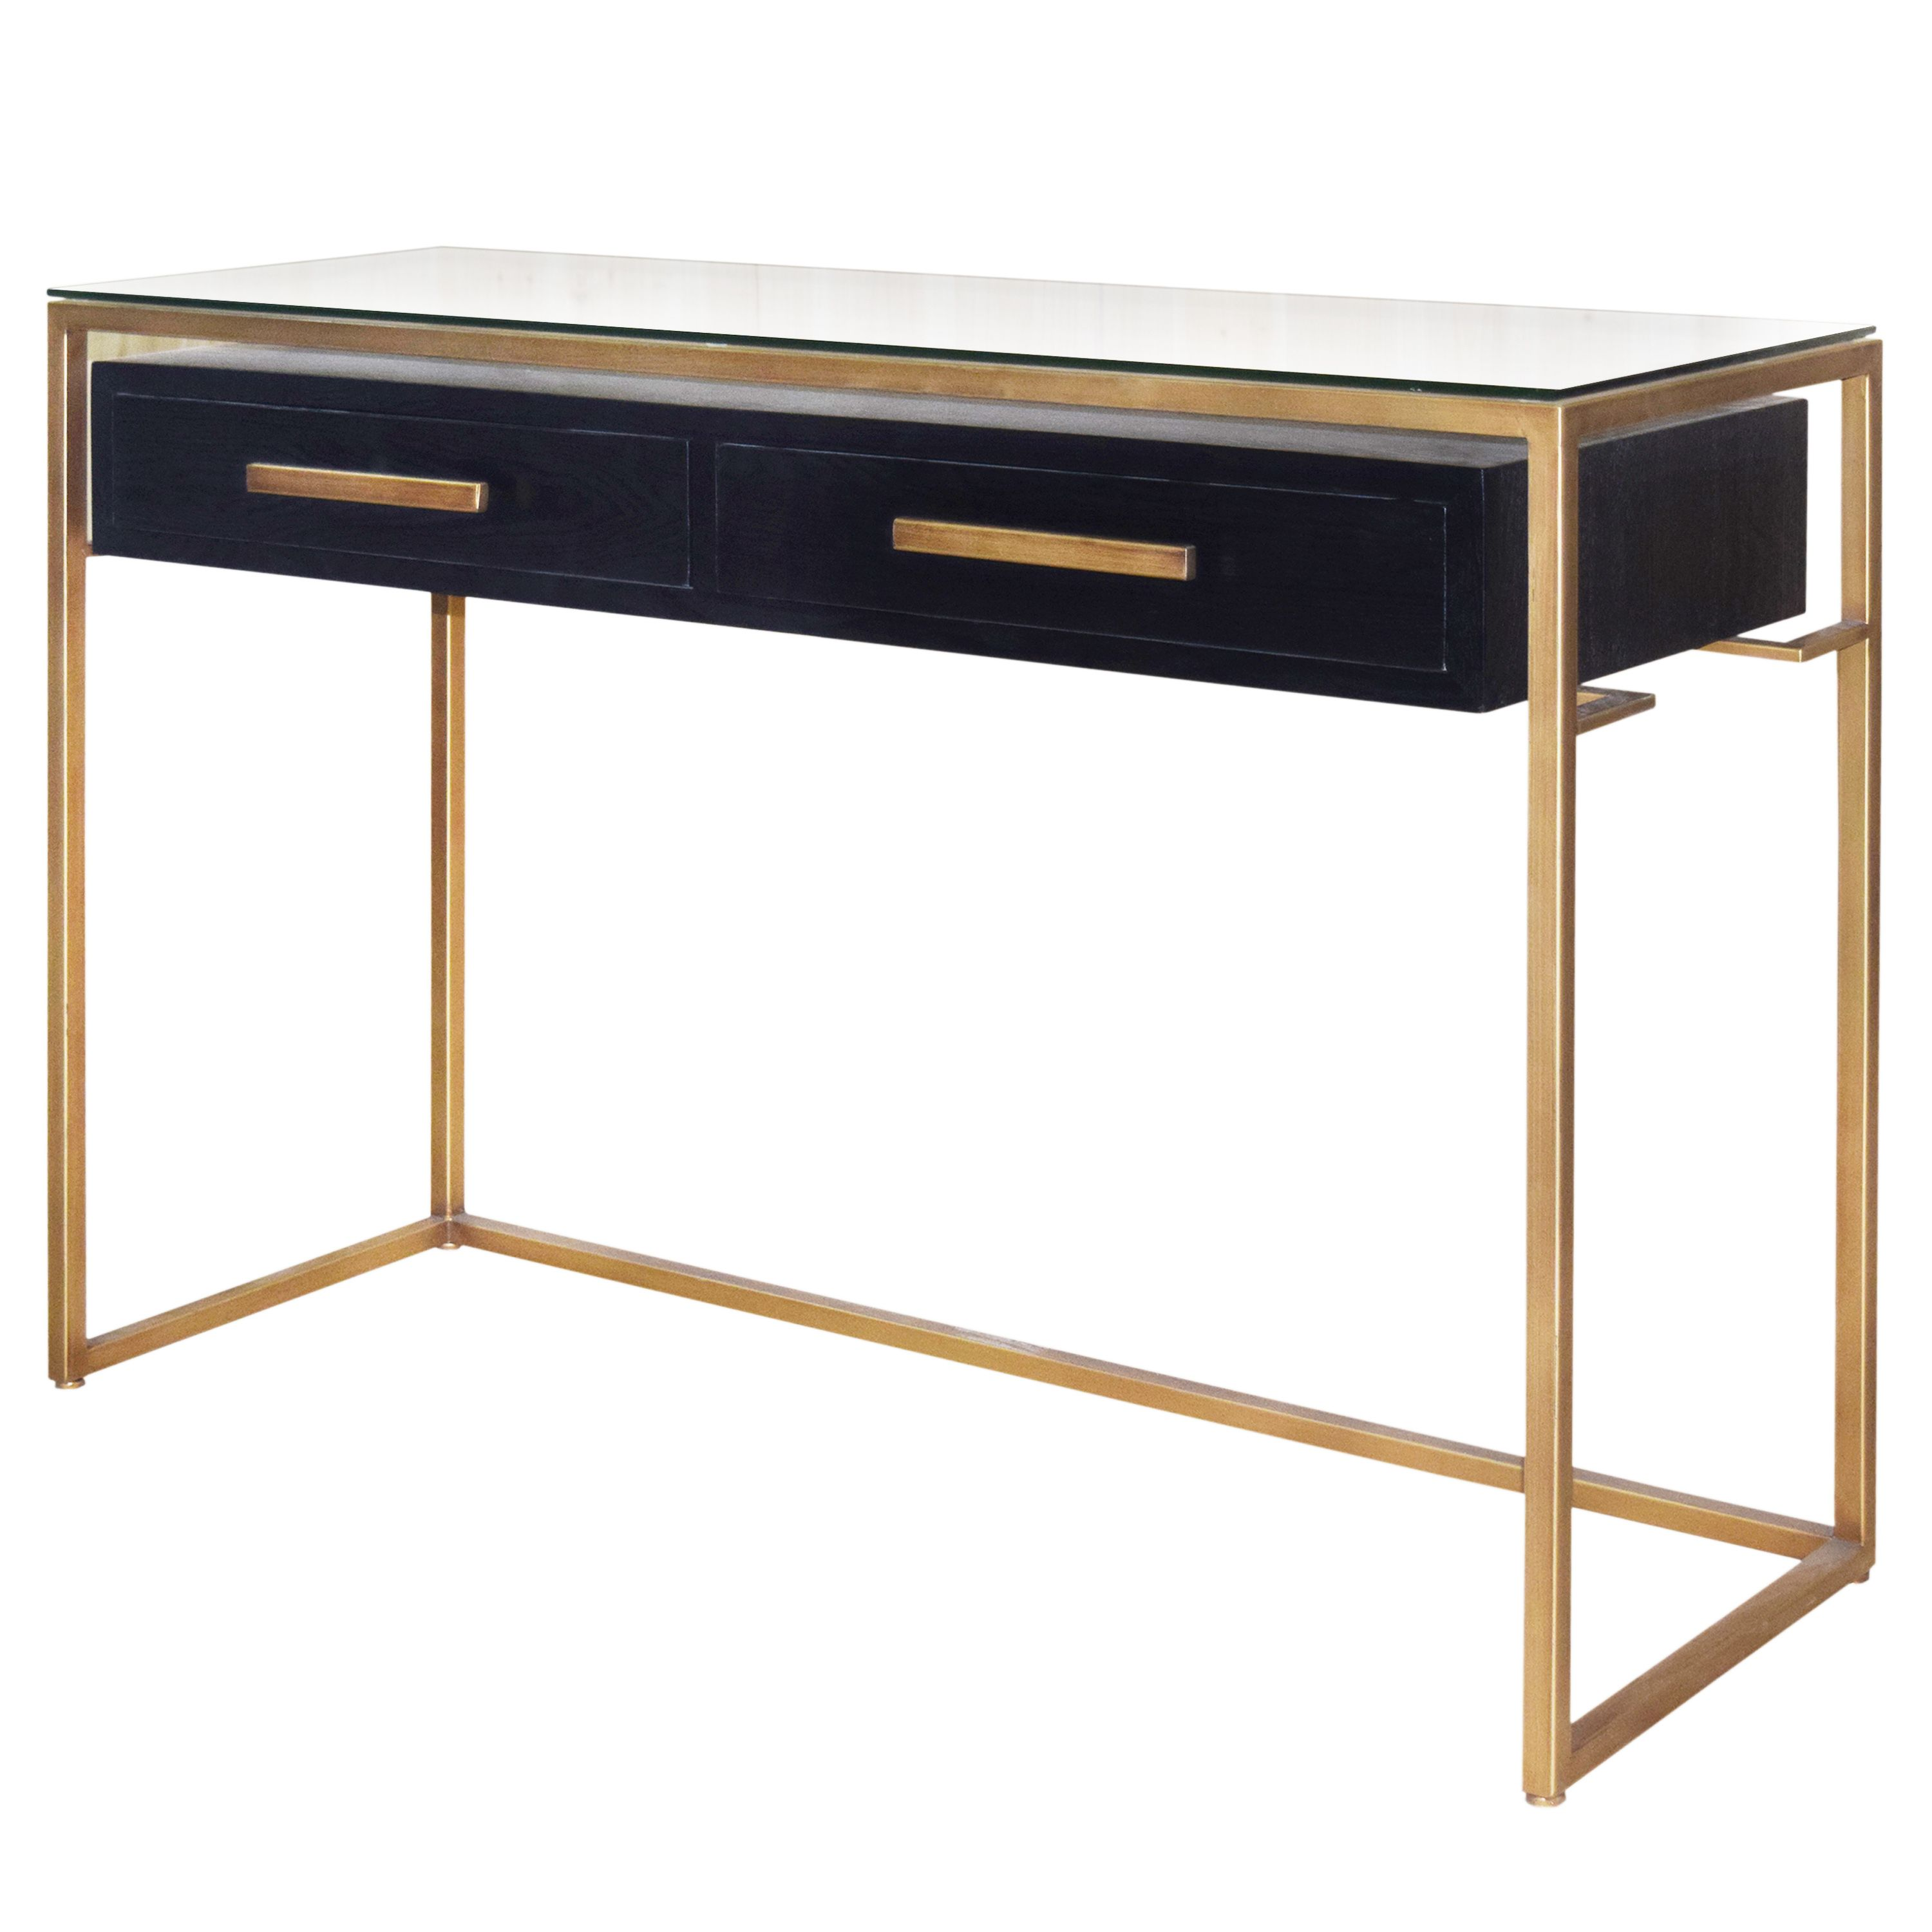 Firenze floating console table 2 drawers gold frame in